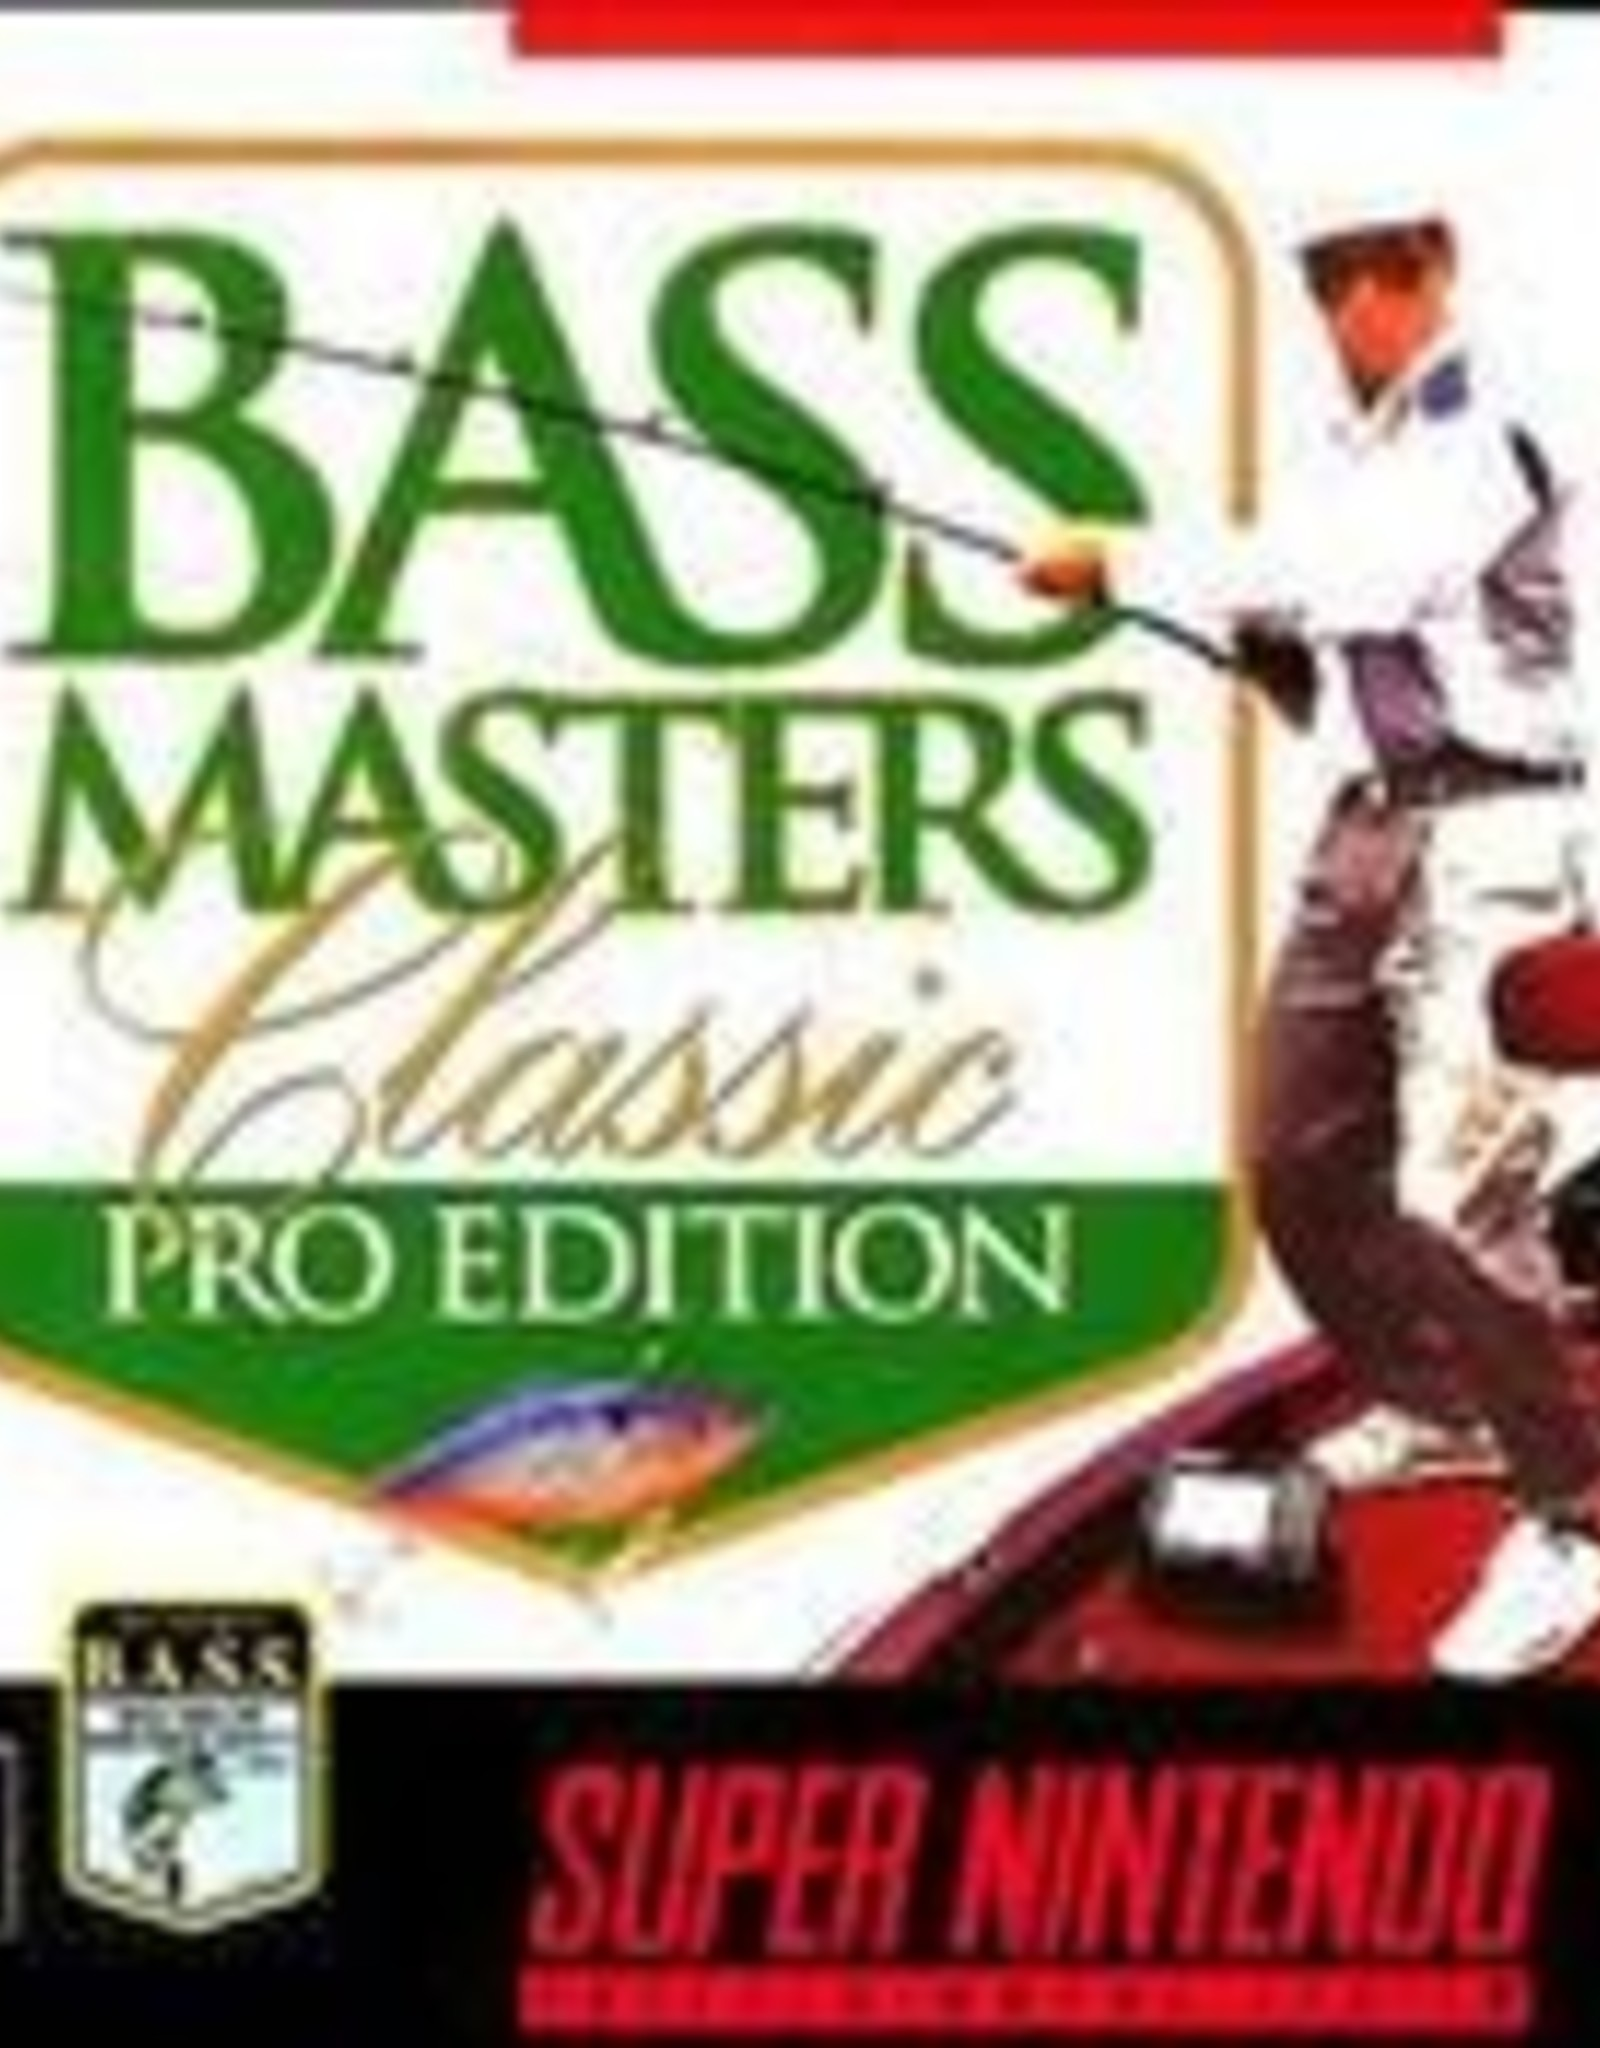 Super Nintendo Bass Masters Classic Pro Edition (Boxed No Manual)